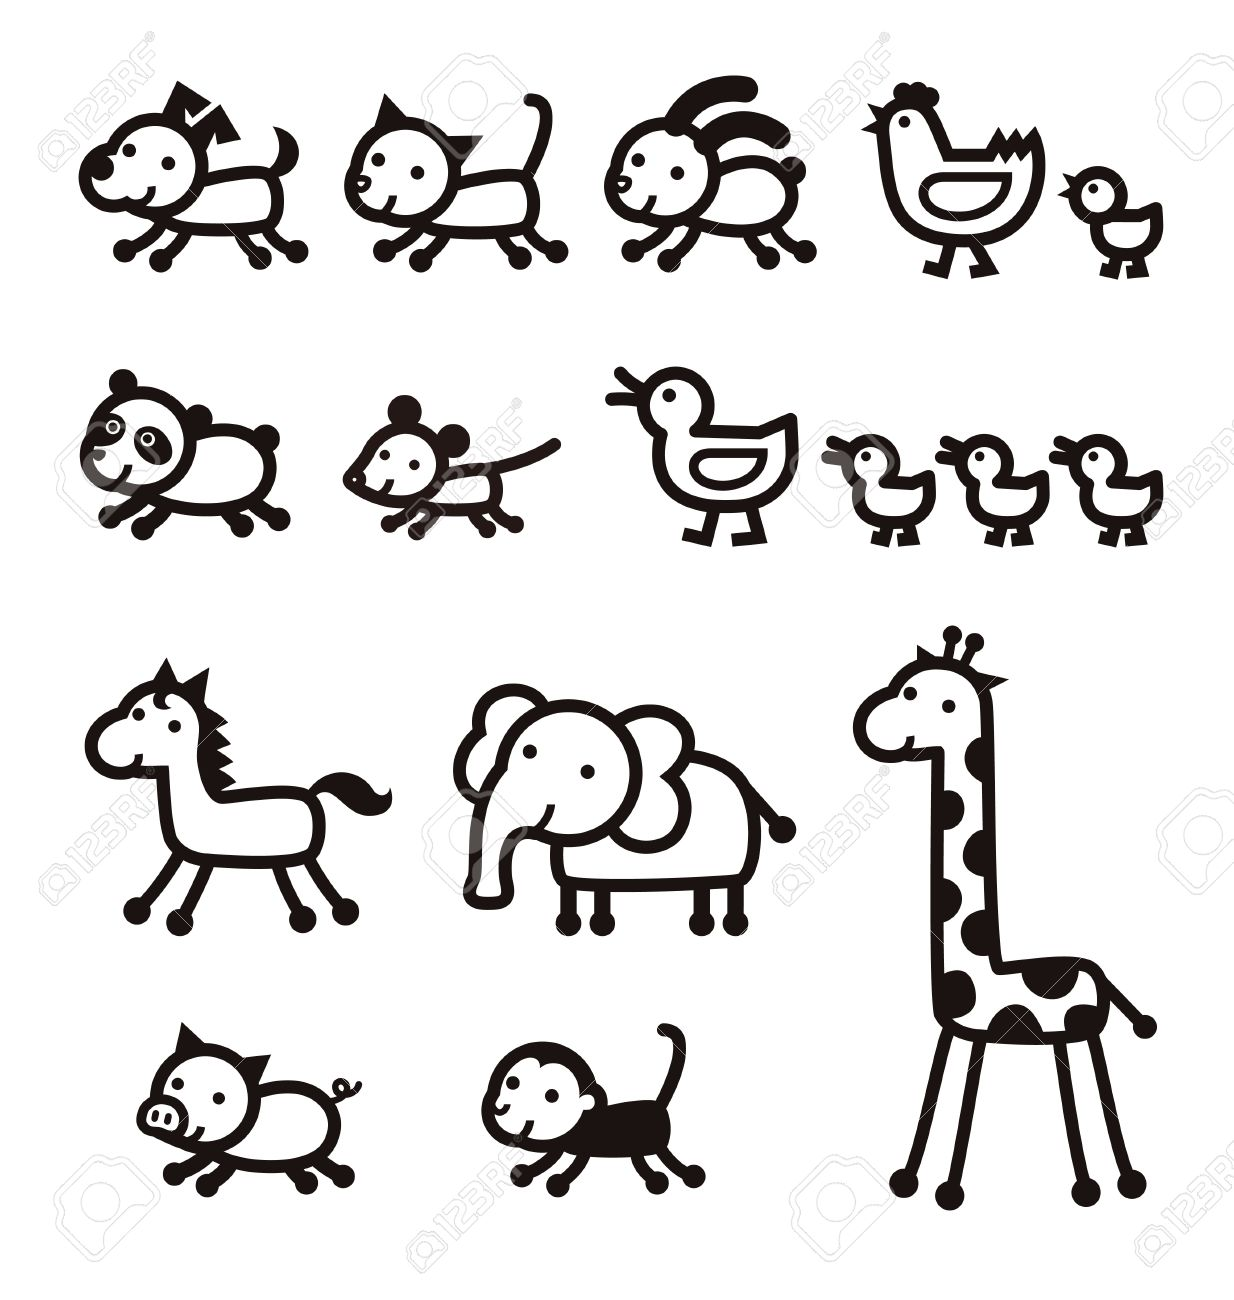 Pet Live Stock Zoo Animal Black And White Icons Royalty Free